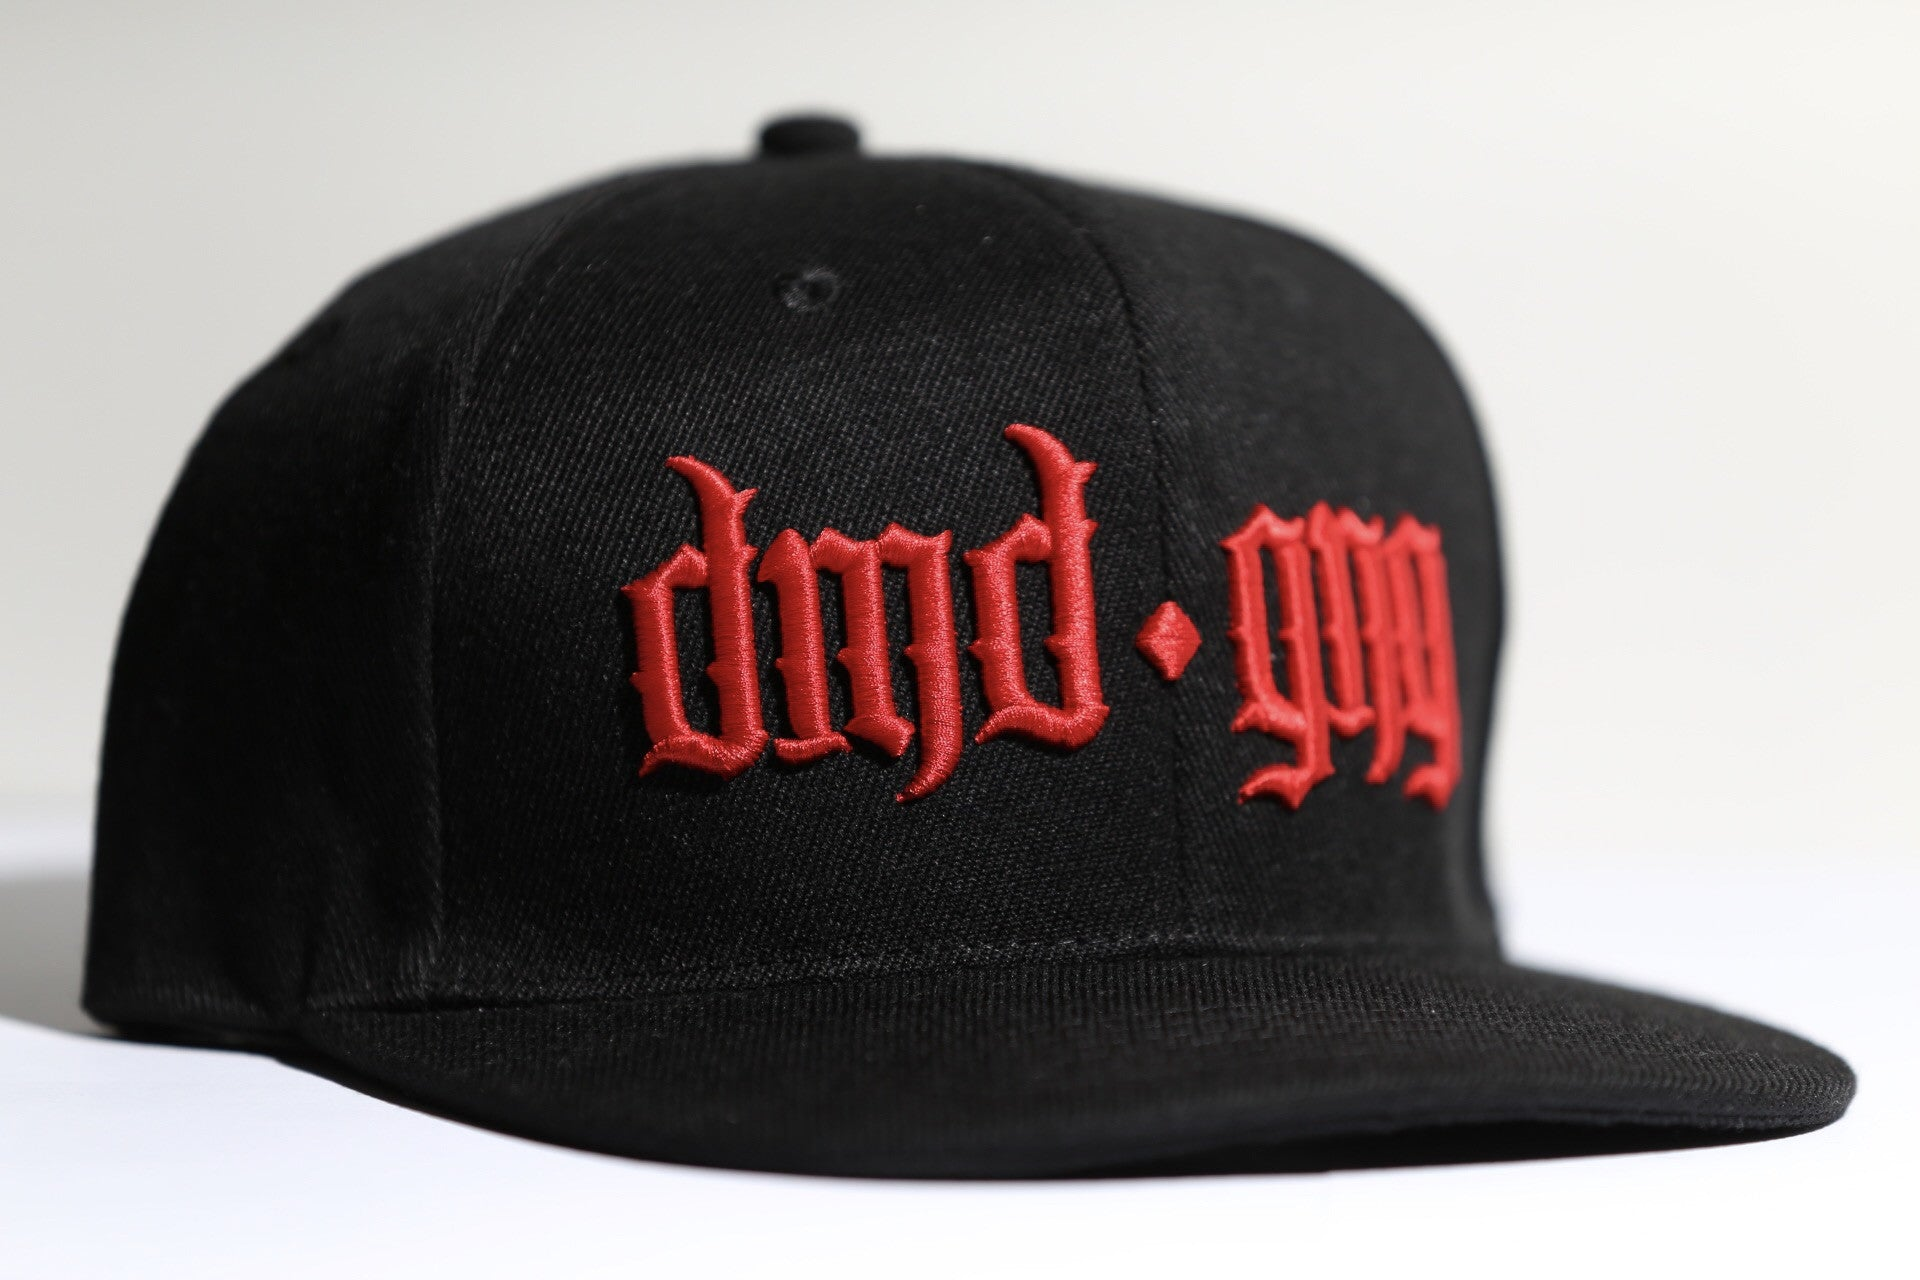 DMDGNG SNAPBACK - BLACK & RED-Diamond Gang